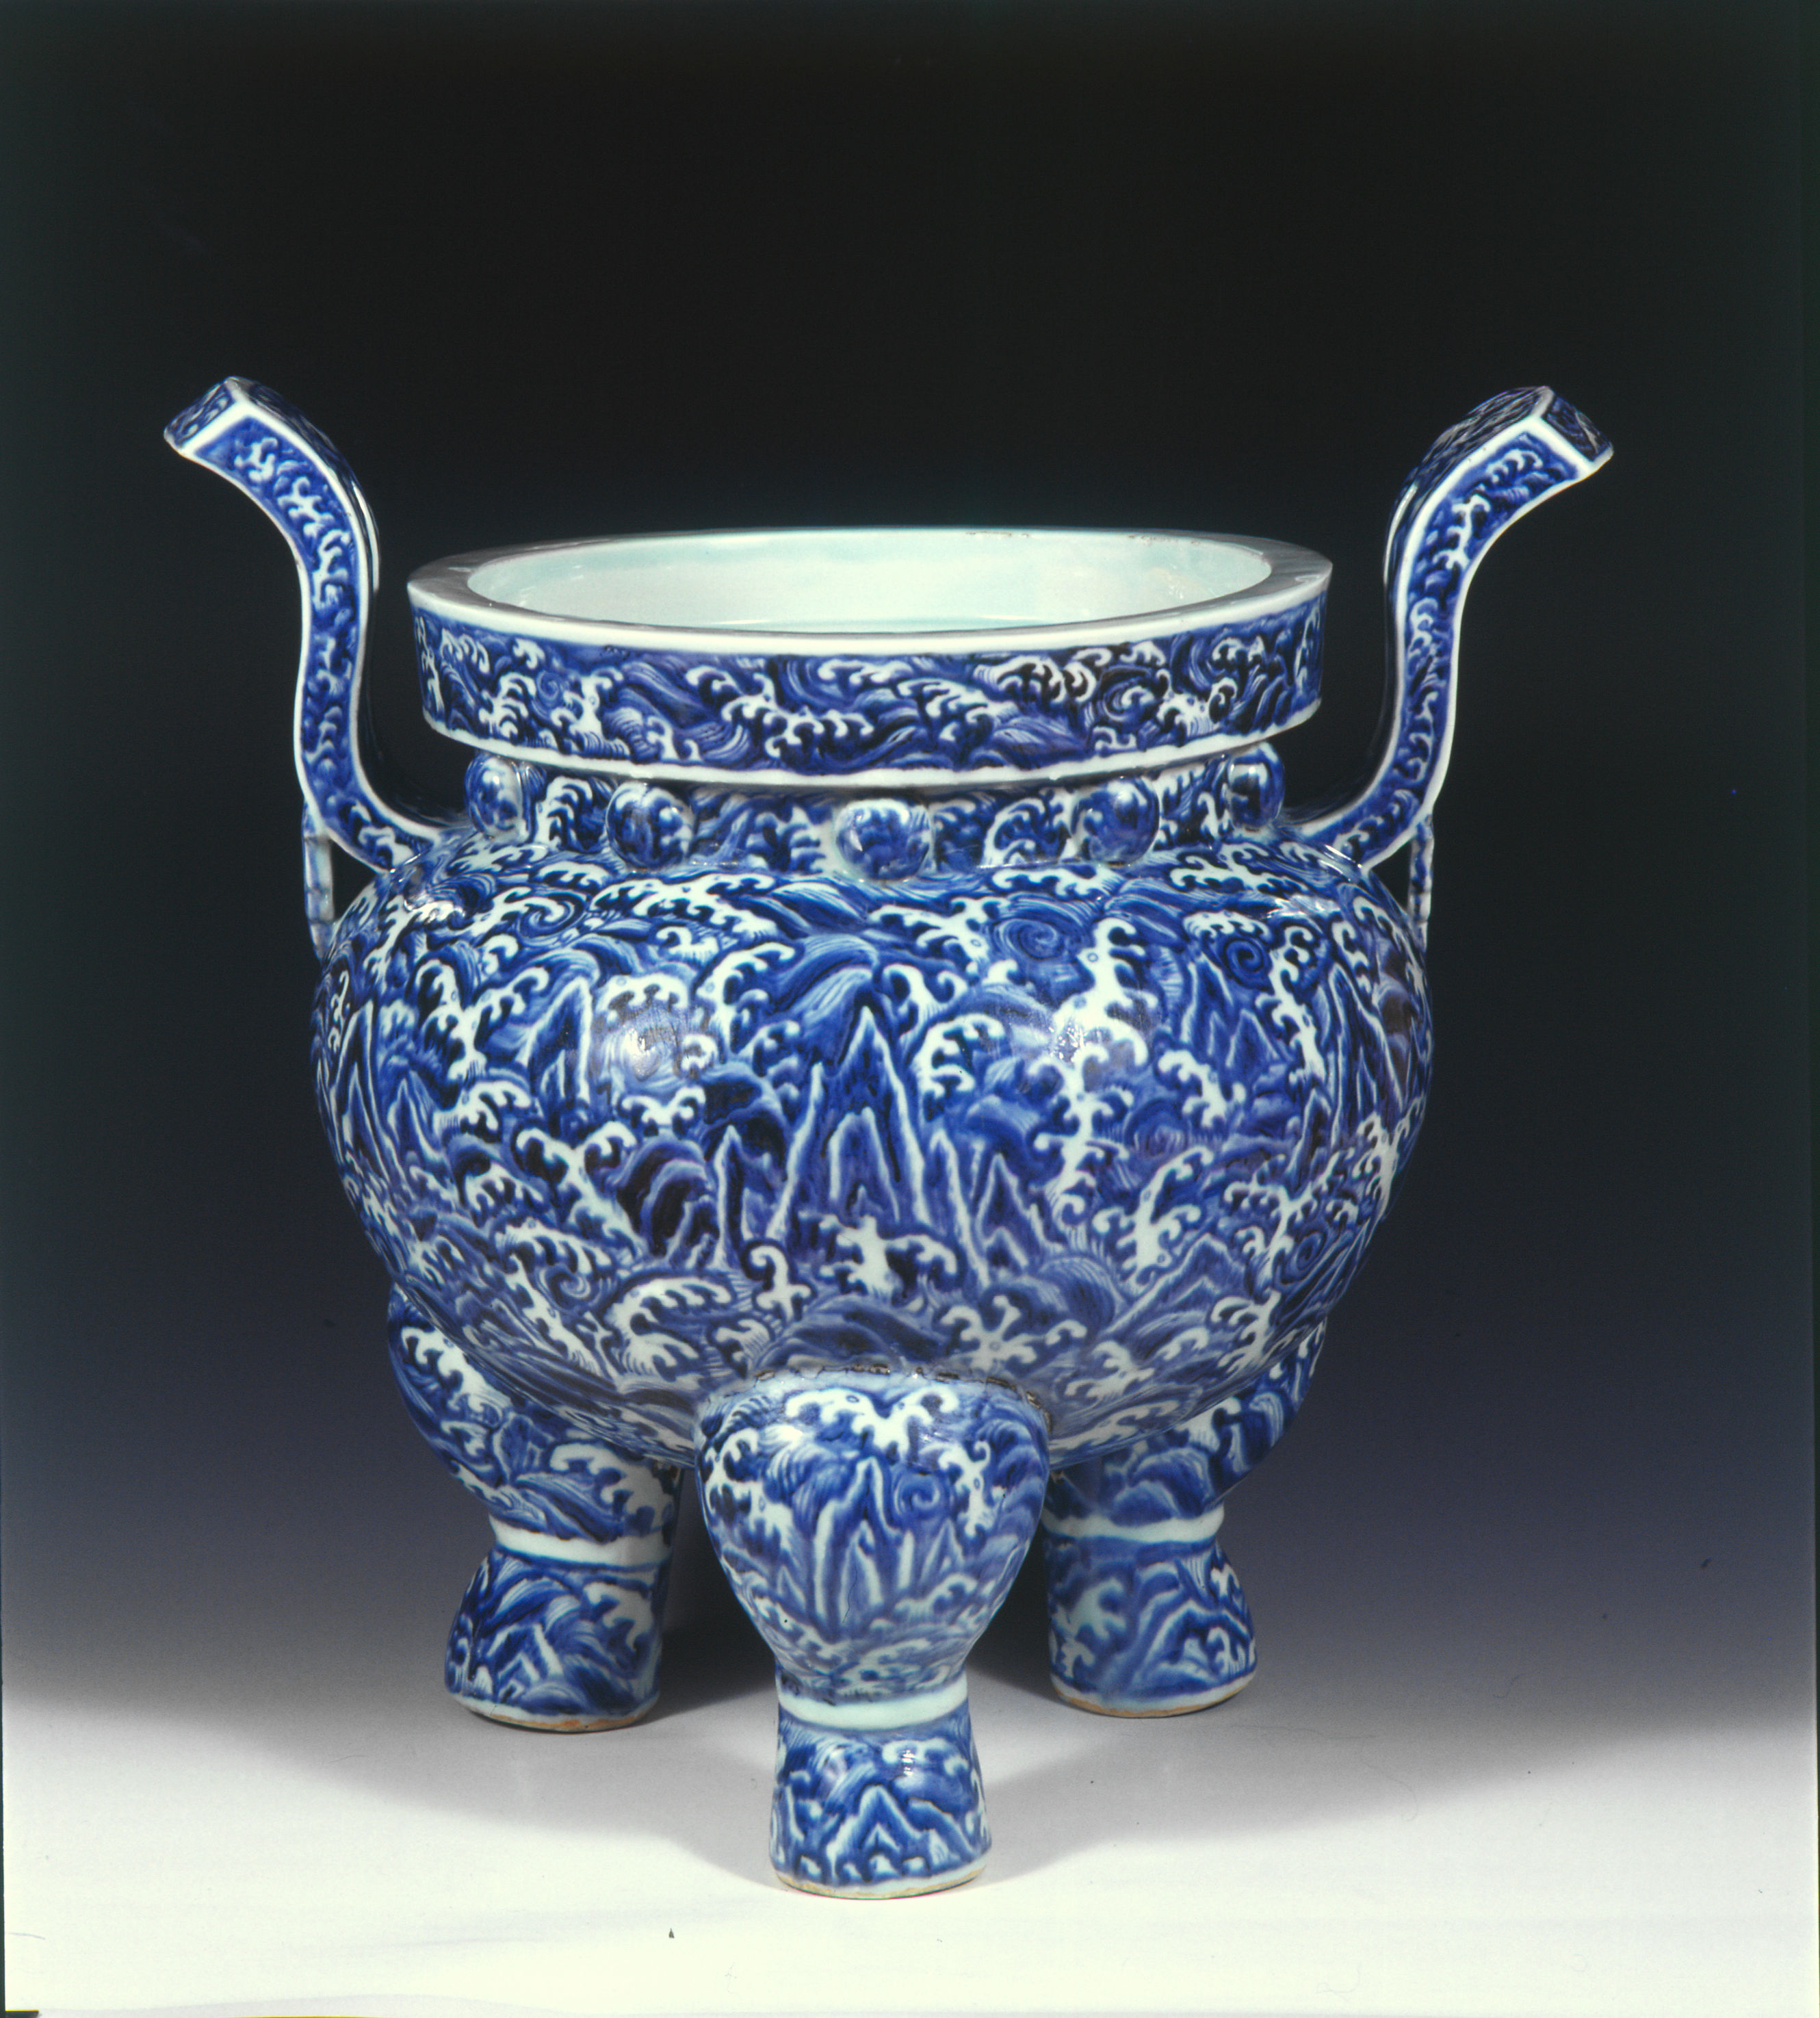 Blue and white porcelain stove. China, Ming Dynasty © Nanjing Museum/Nomad Exhibitions